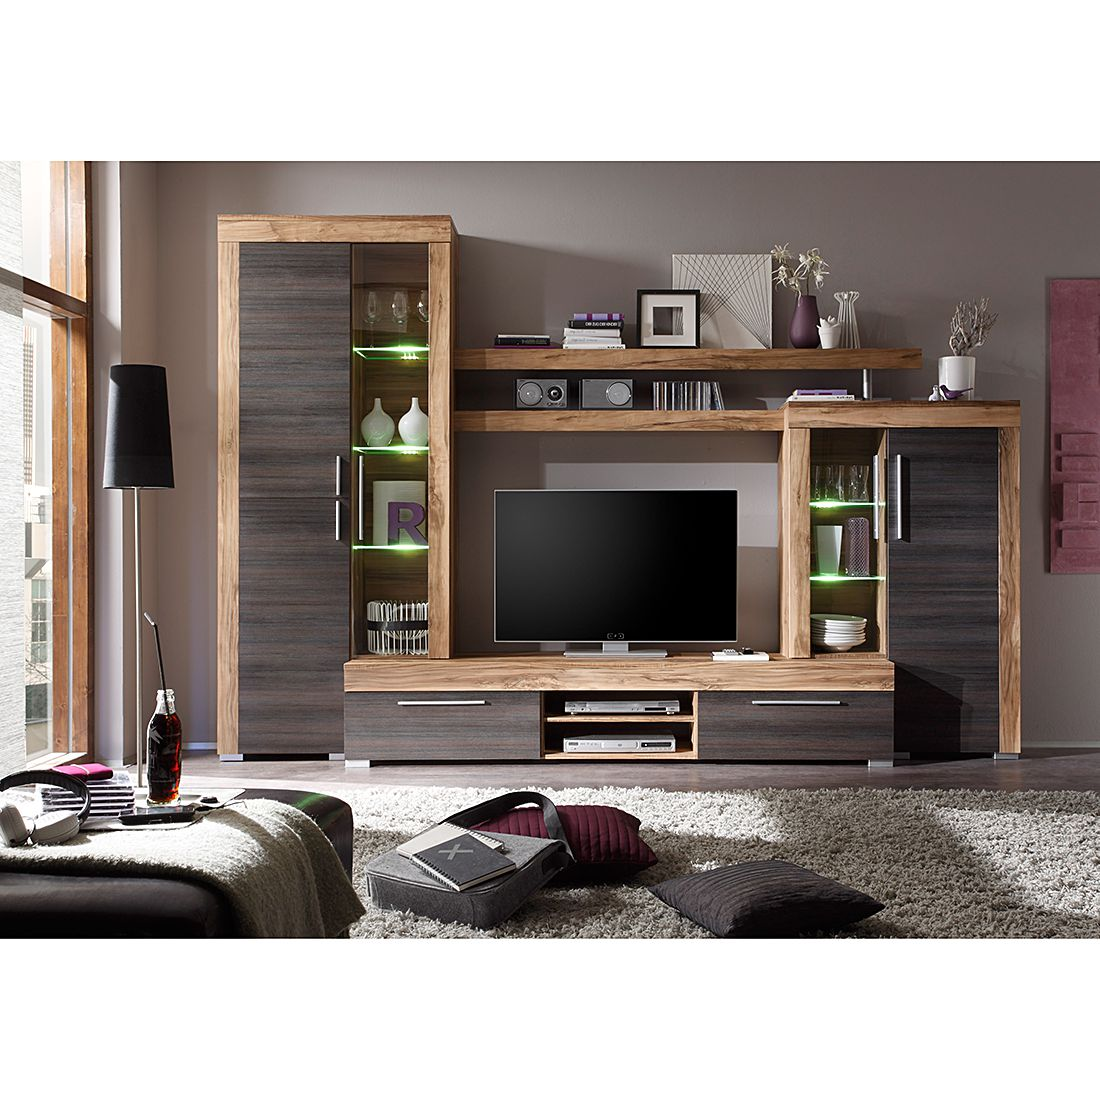 wohnwand bang 4 teilig inkl beleuchtung nussbaum satin dunkelbraun touchwood dekor. Black Bedroom Furniture Sets. Home Design Ideas